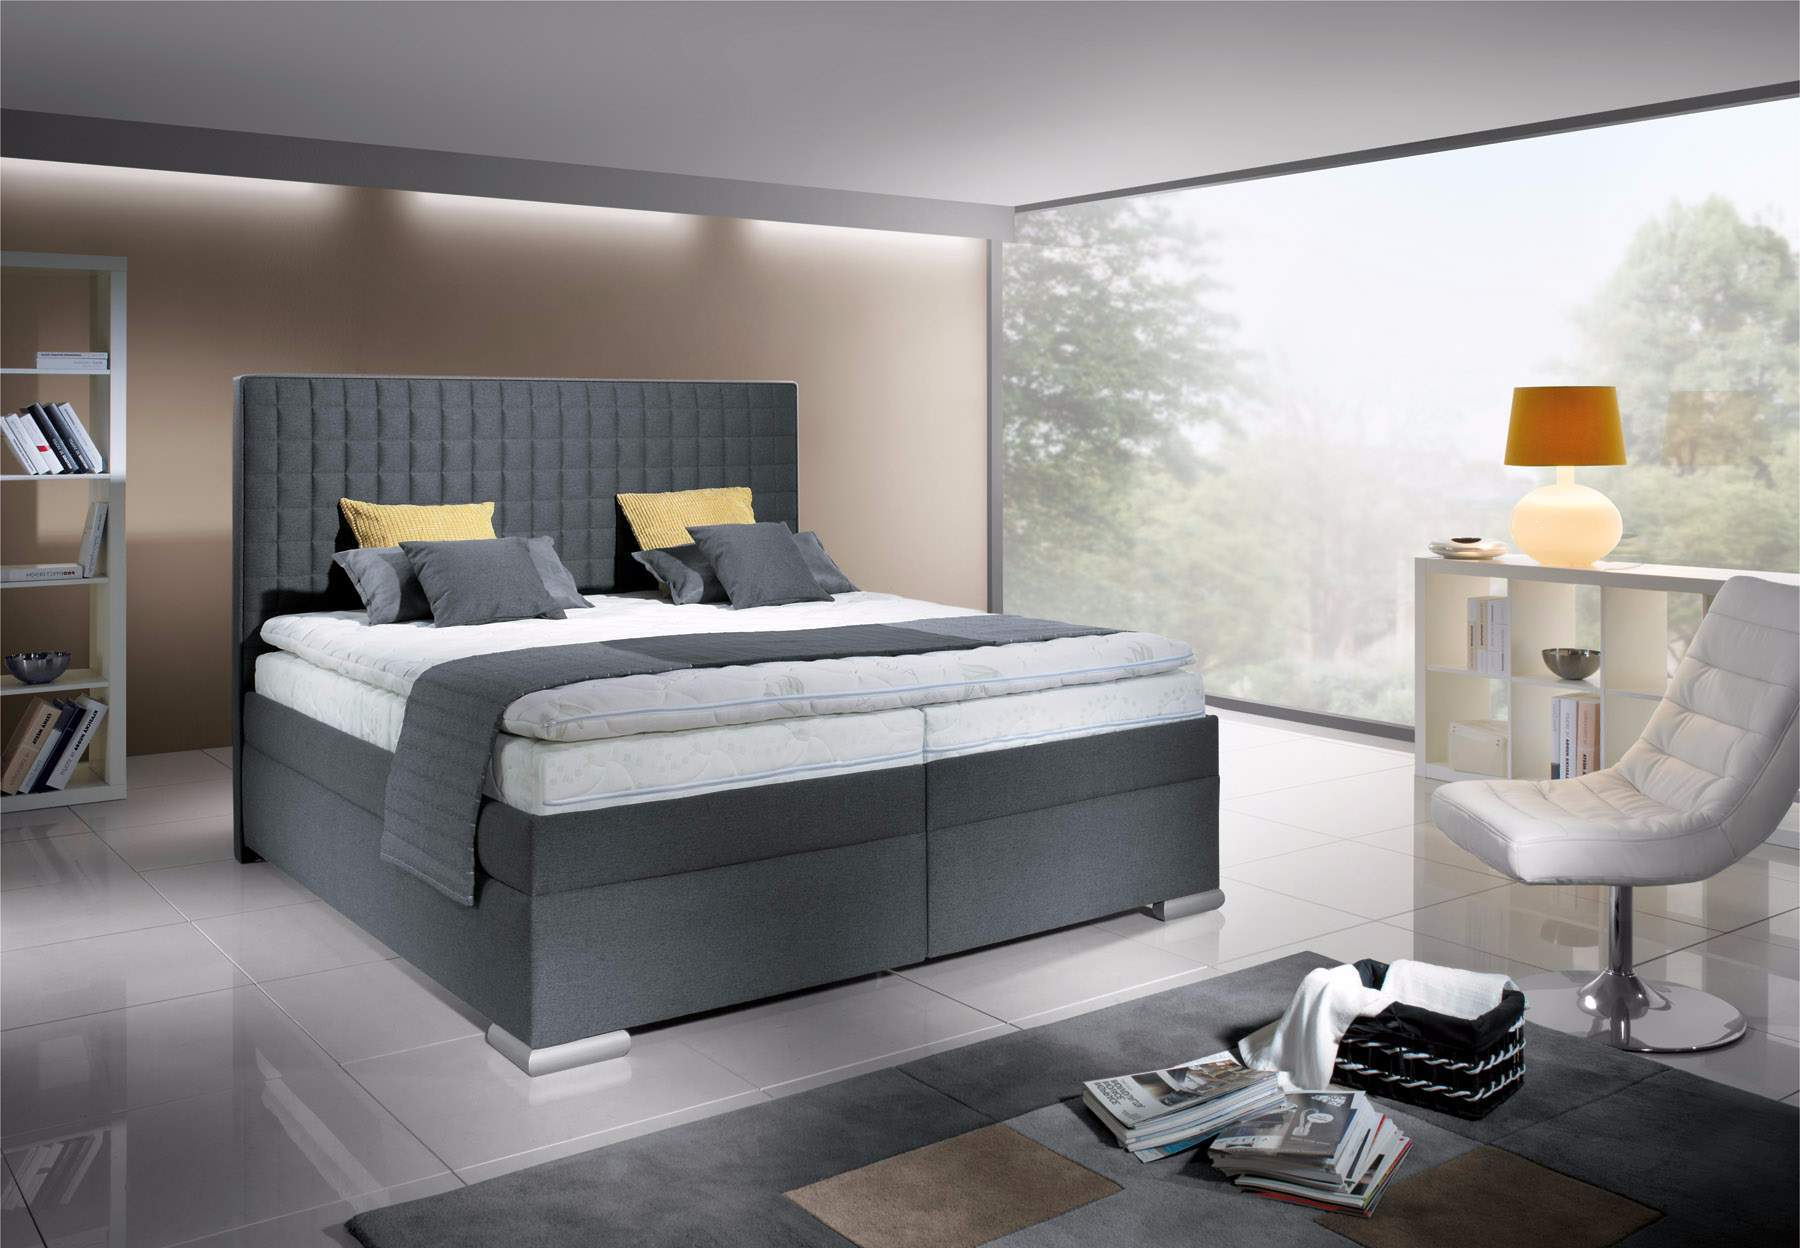 boxspringy boxspring rialto 180x200 ed l tka postele blan kvalitn postele od esk ho. Black Bedroom Furniture Sets. Home Design Ideas